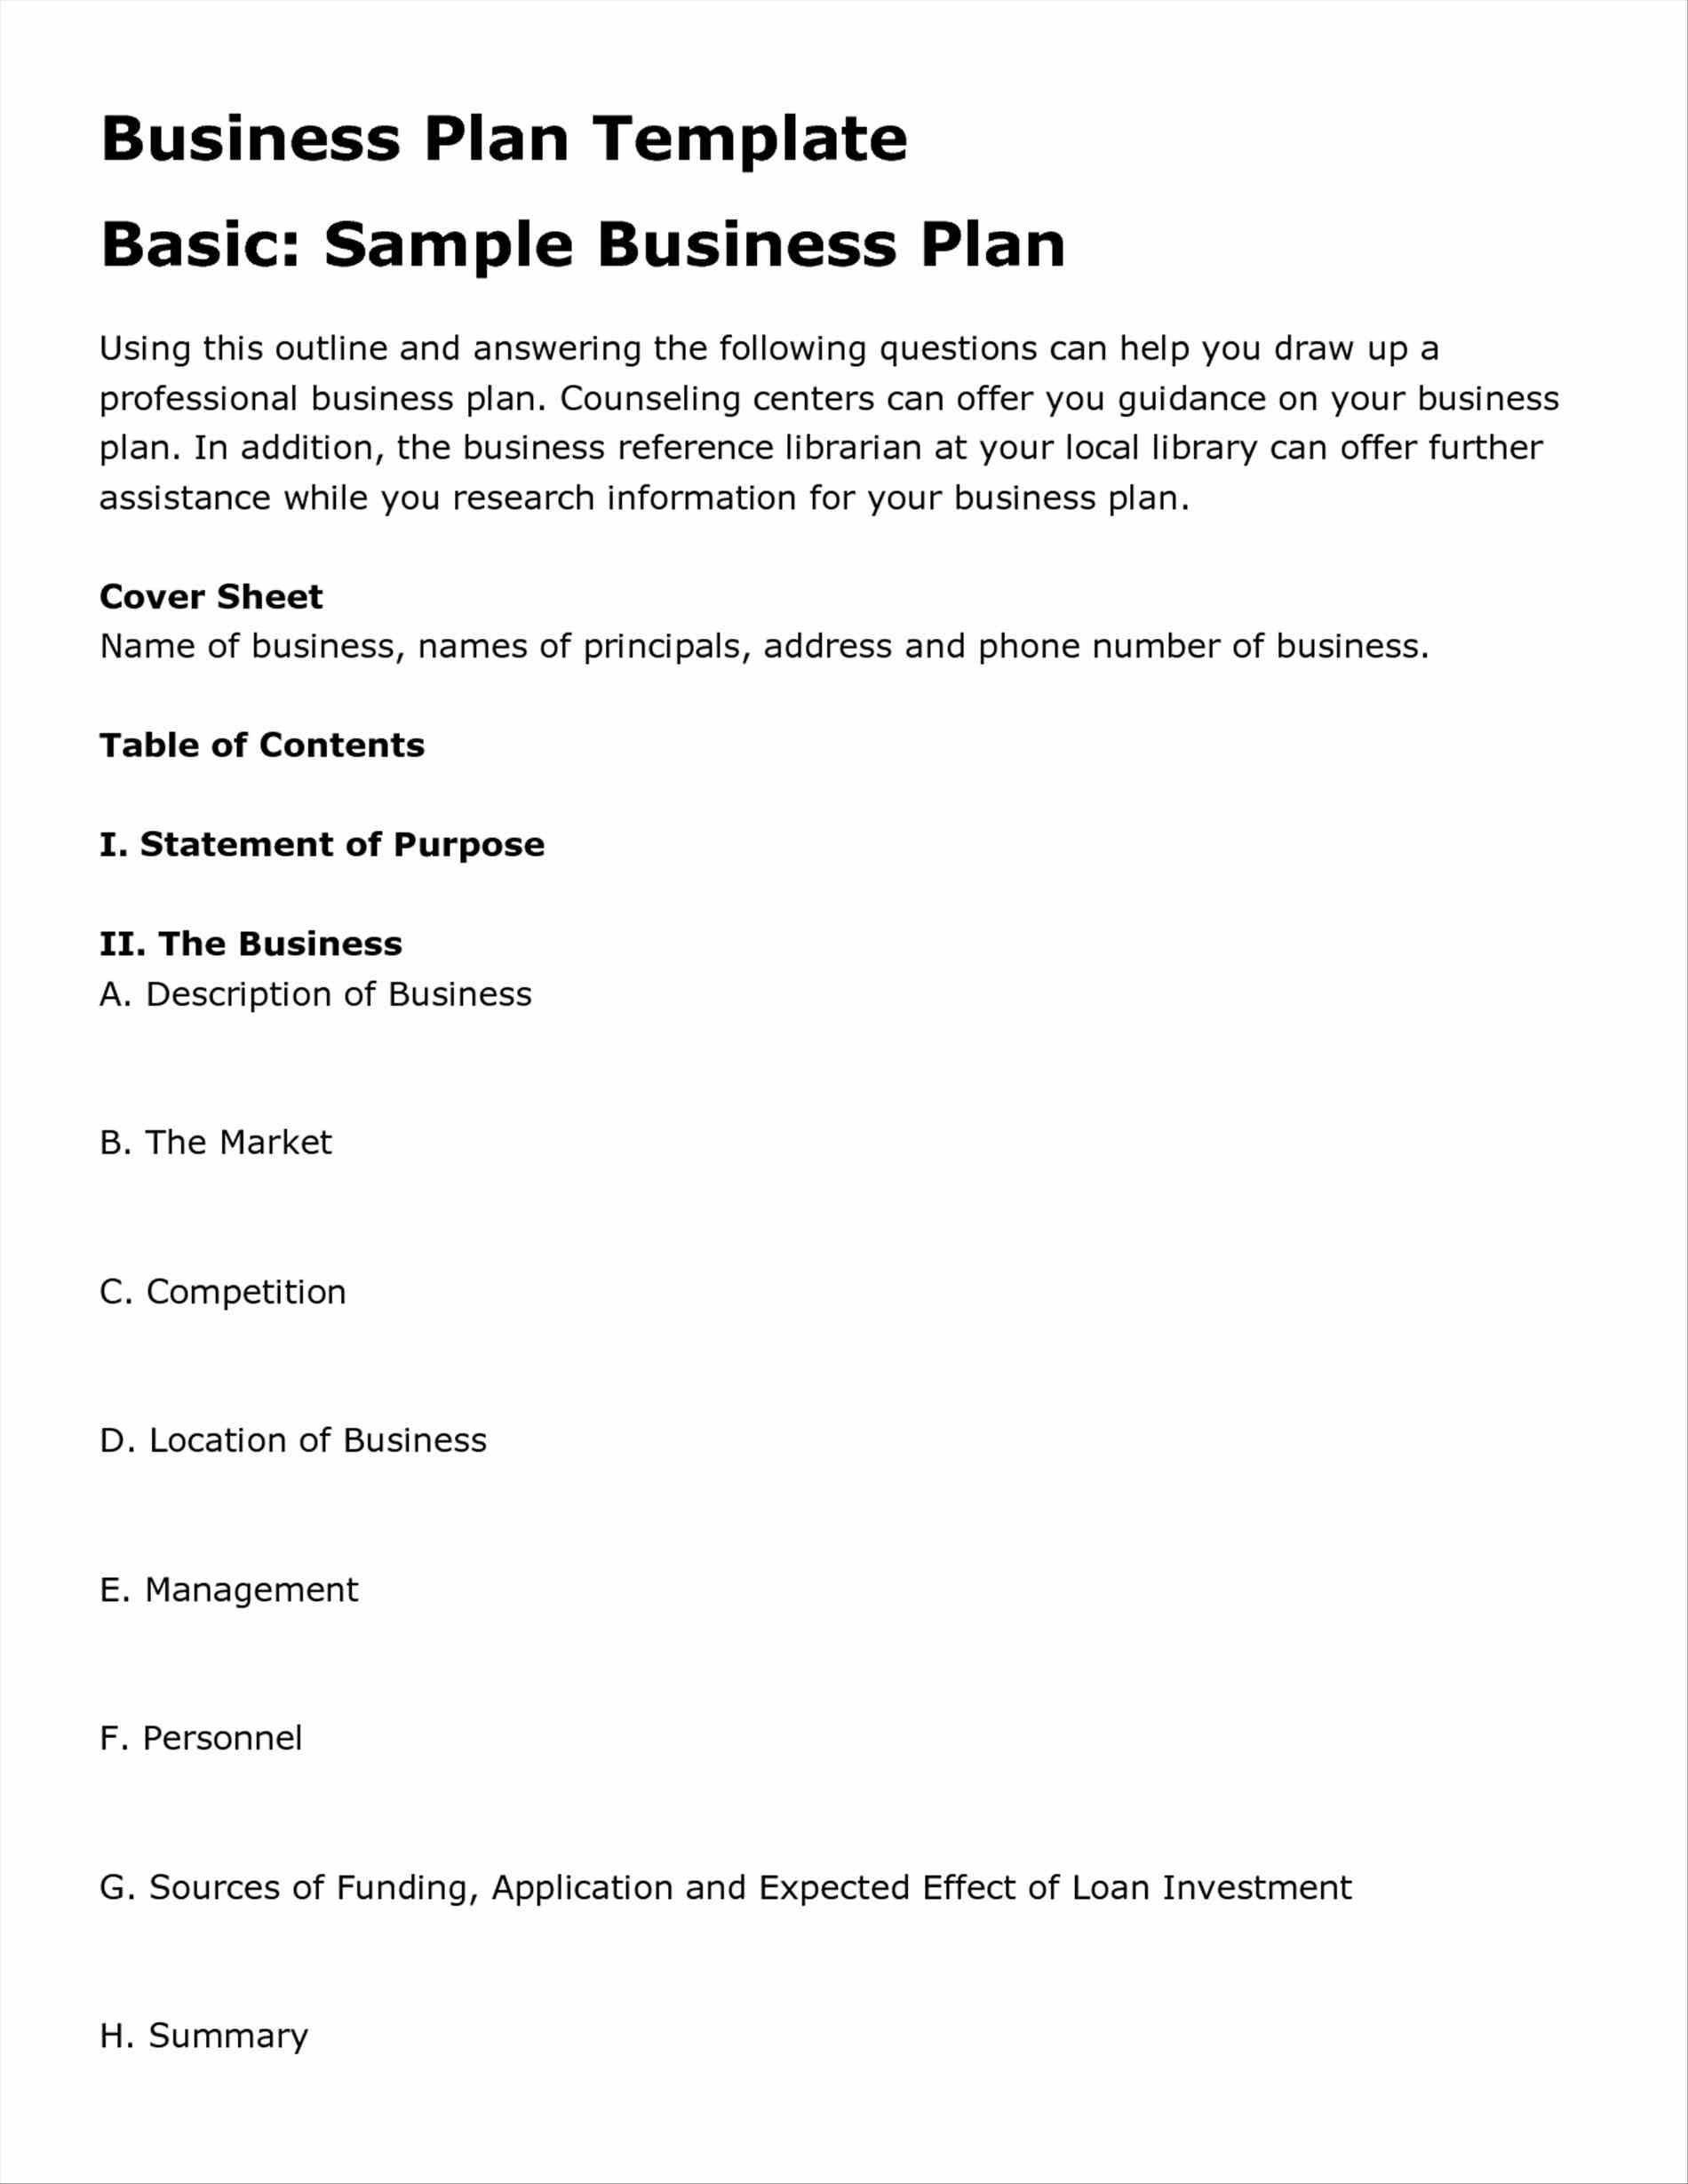 Business plan template restaurant templates in word excel pdf free business plan template restaurant templates in word excel pdf free cafe business plan template restaurant business plan templates in word excel flashek Image collections